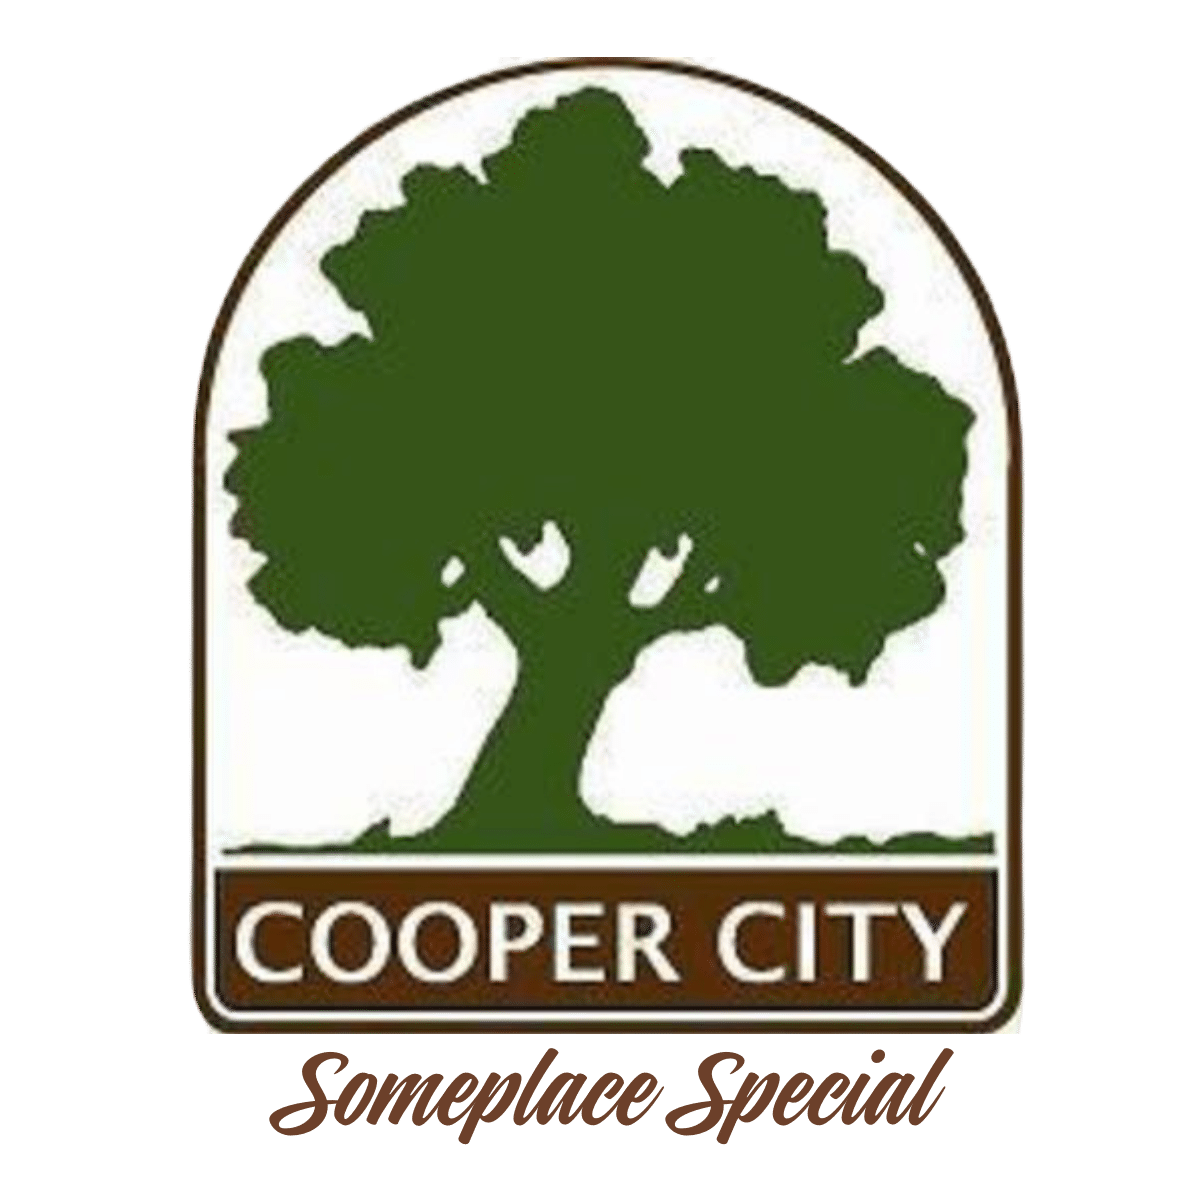 Cooper City Logo / City Seal